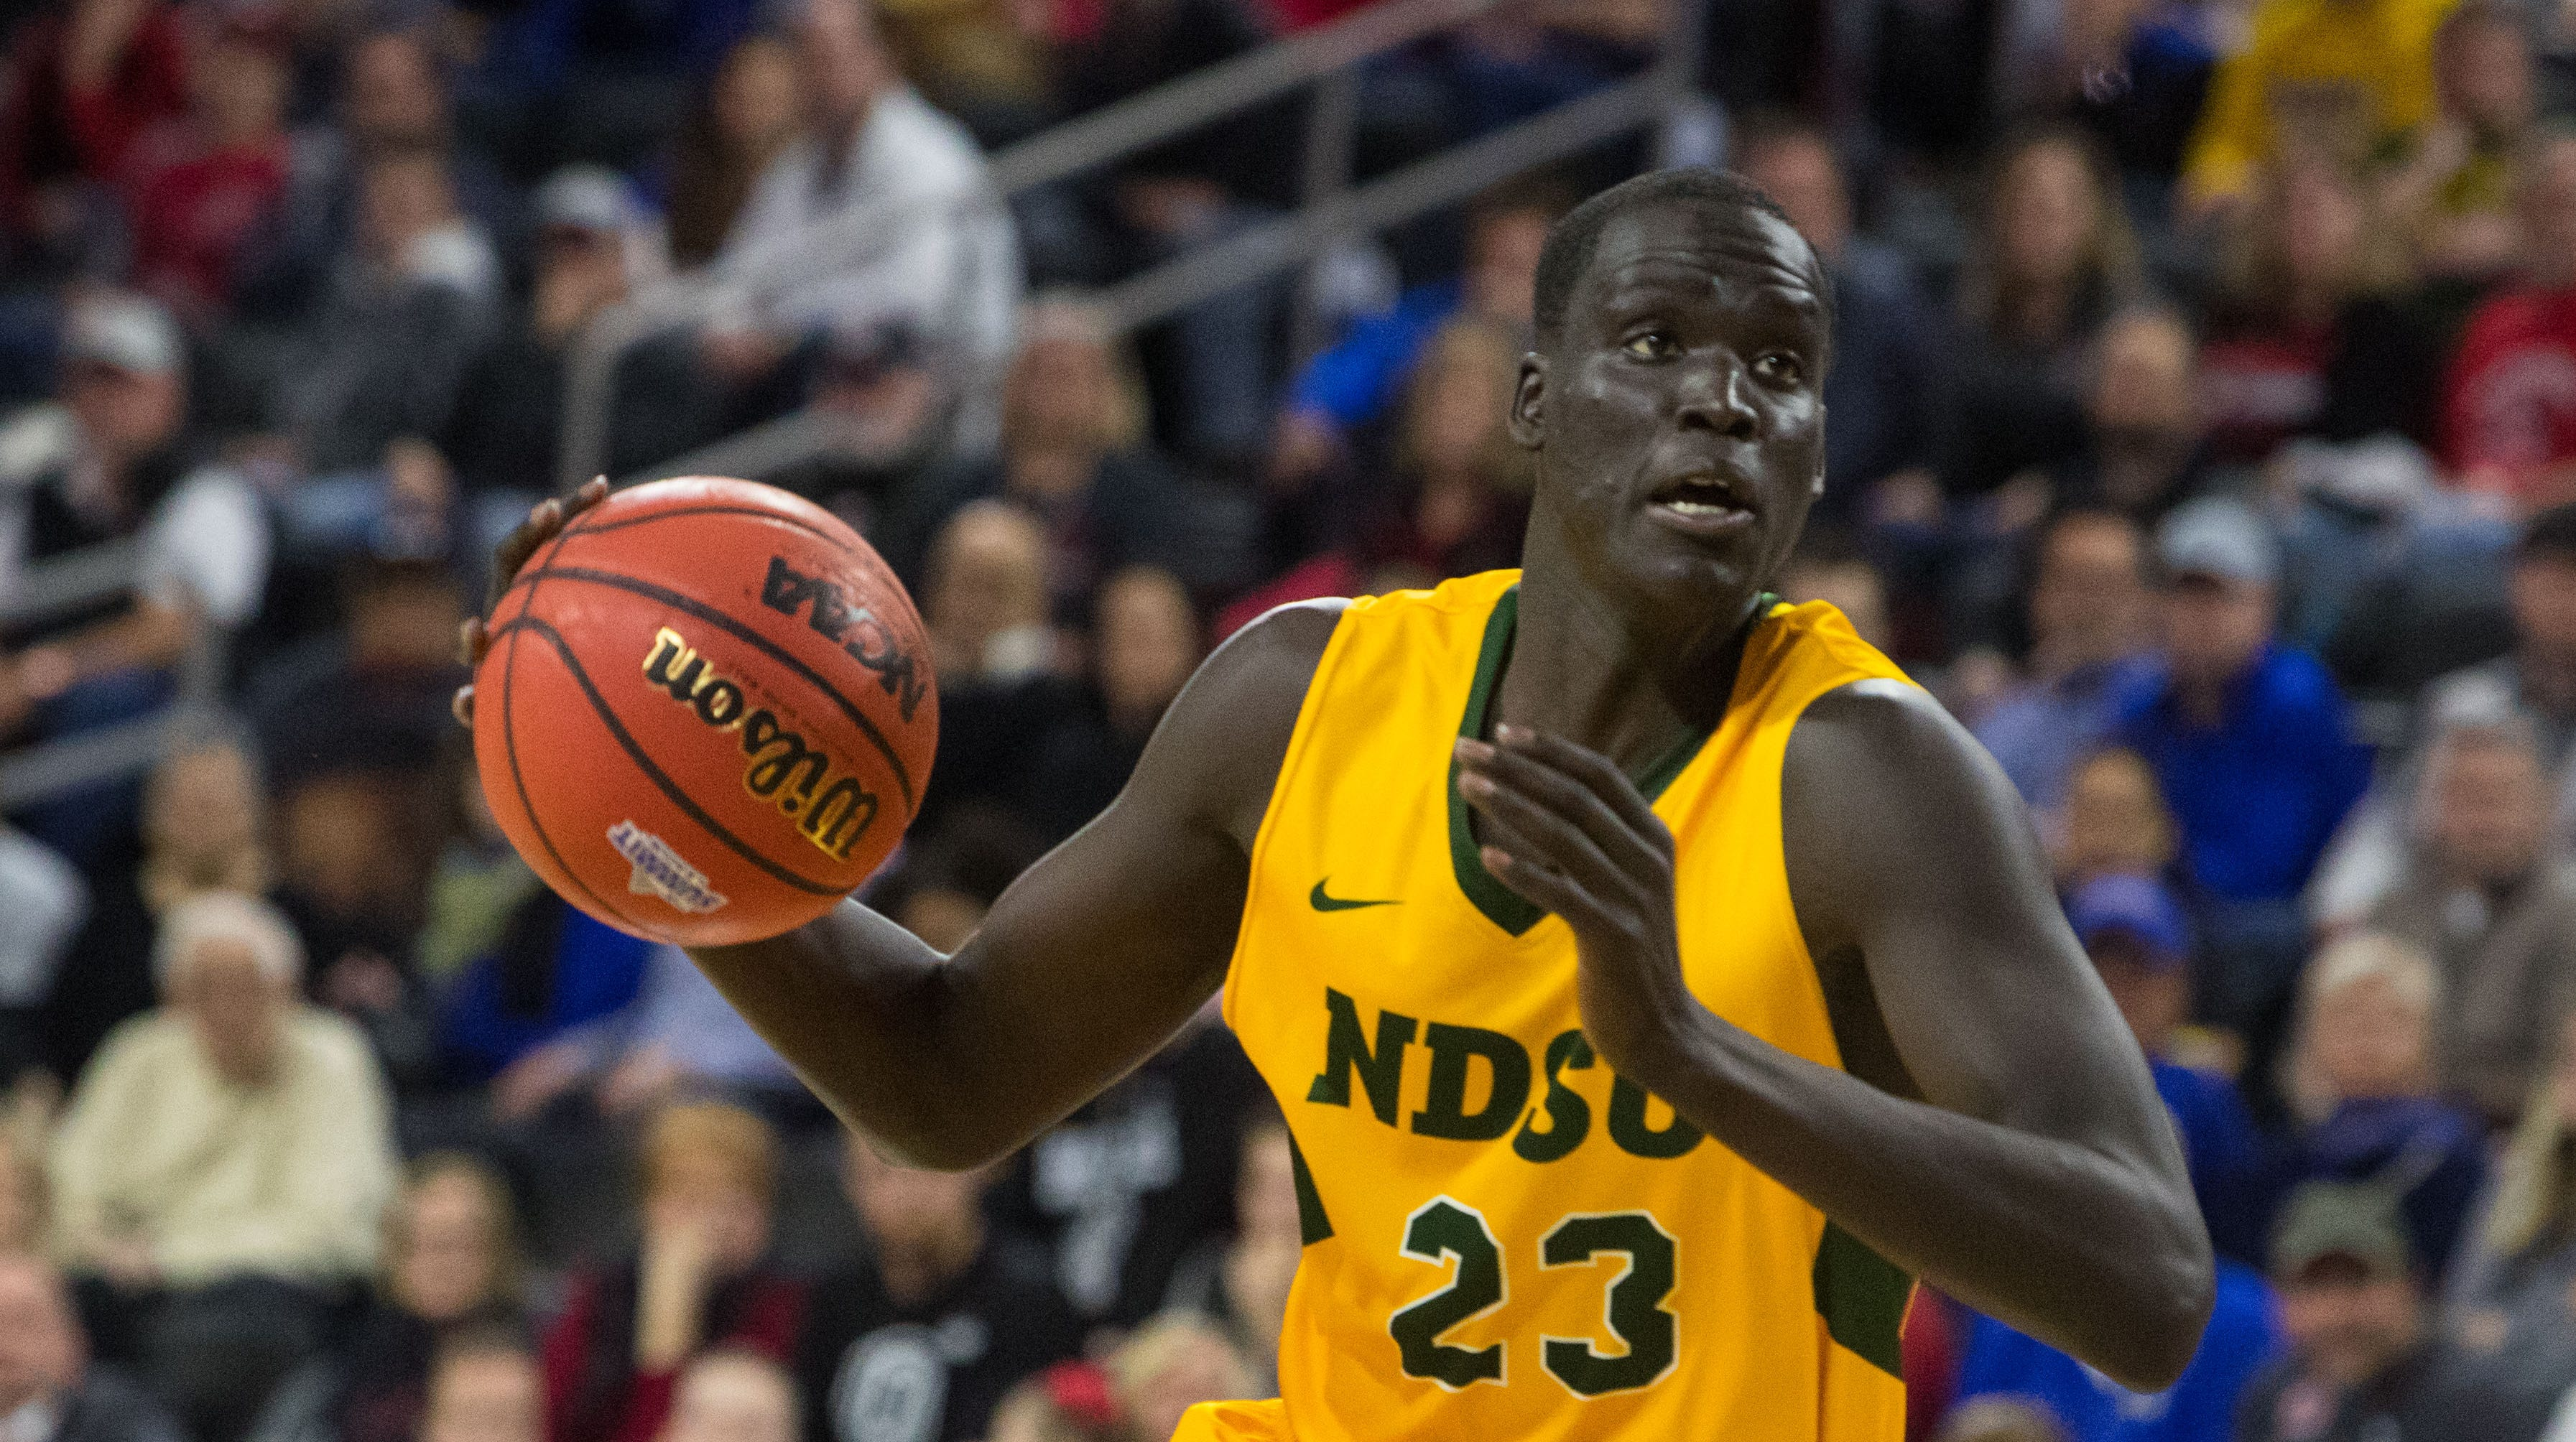 North Dakota State's Deng Geu (23) dribbles the ball during the game against Omaha at the 2019 Summit League Men's Championship at the Denny Sanford Premier Center  in Sioux Falls, S.D., Tuesday, March 12, 2019.